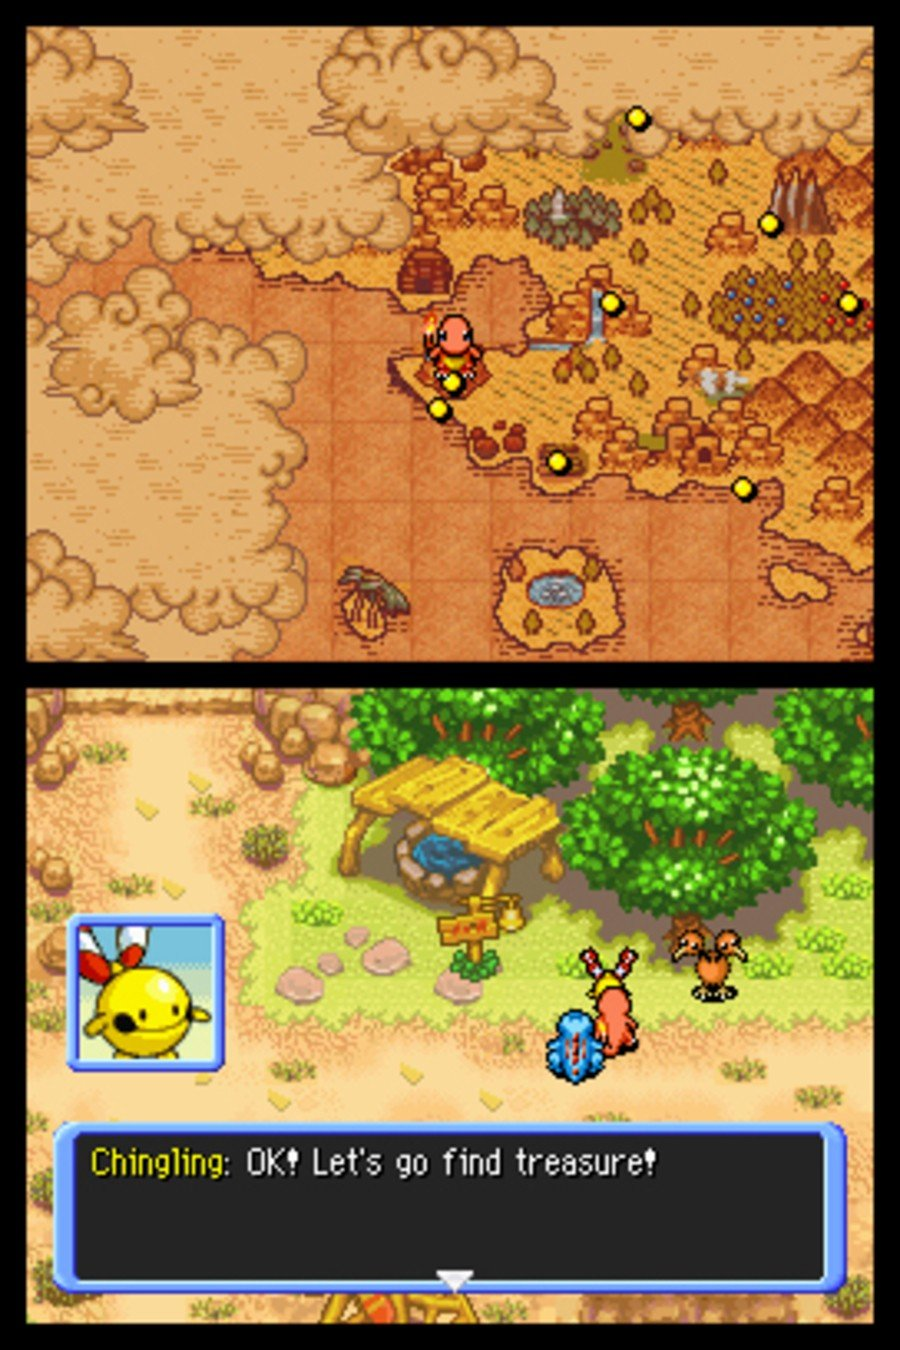 Pokémon Mystery Dungeon: Explorers of Time / Darkness Screenshot